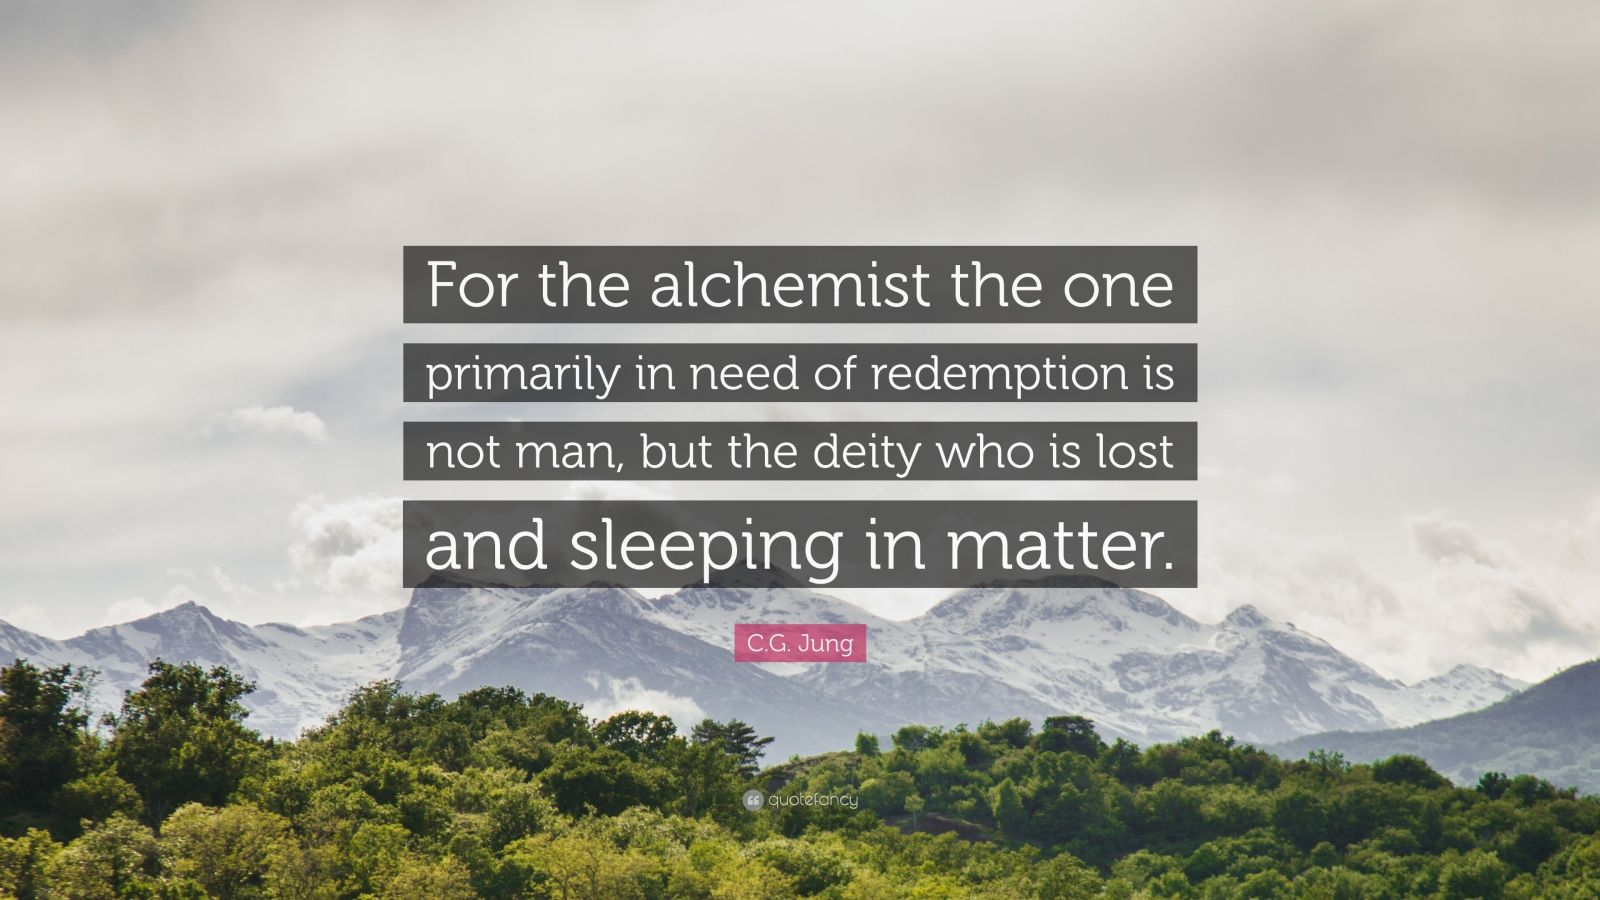 """C.G. Jung Quote: """"For the alchemist the one primarily in need of redemption is not man, but the deity who is lost and sleeping in matter."""""""